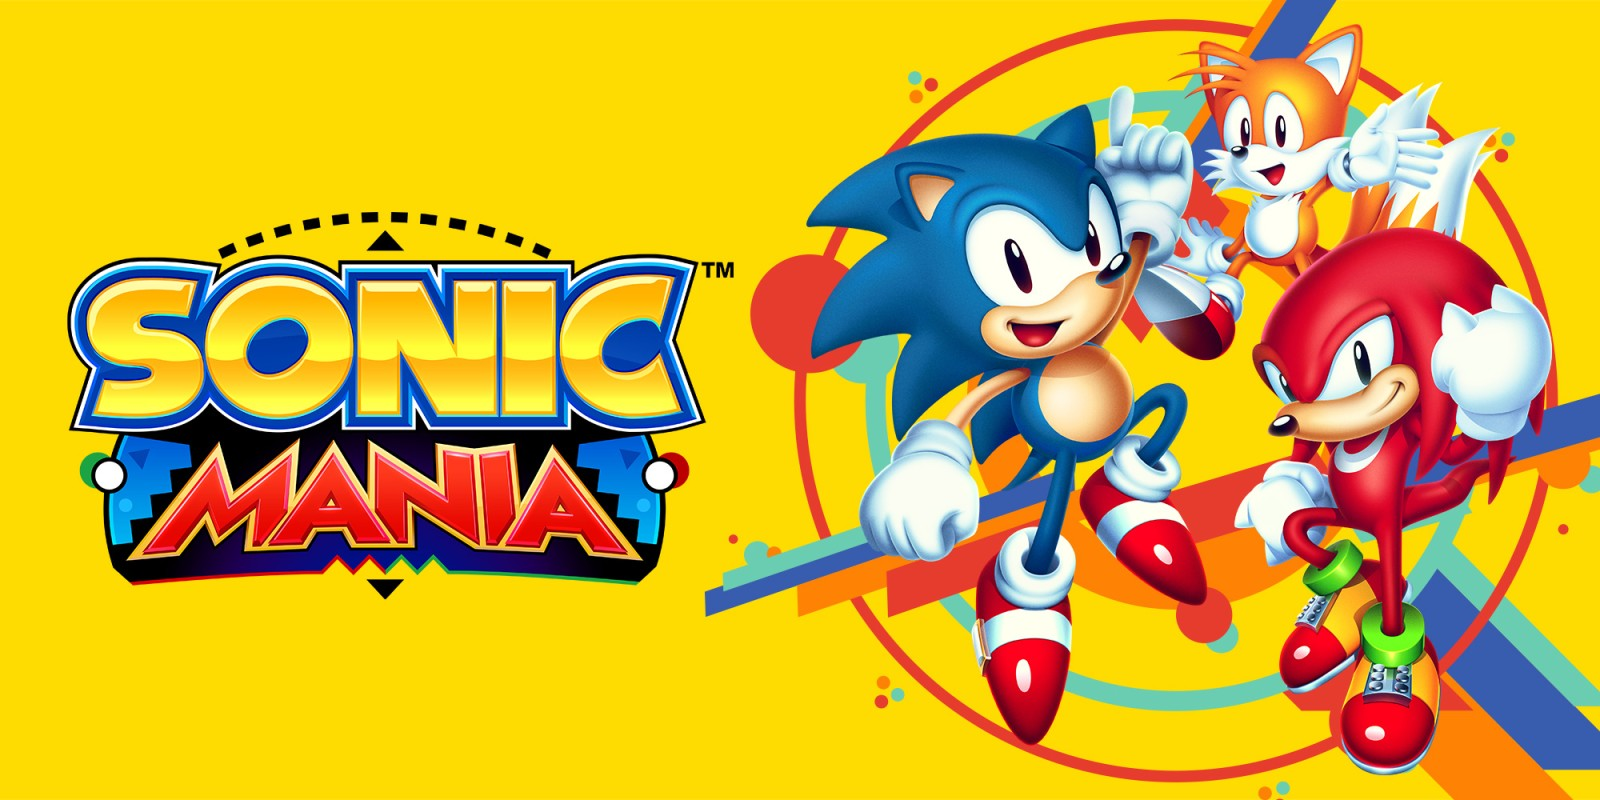 Ps4 Wallpaper Hd Sonic Mania Nintendo Switch Download Software Spiele